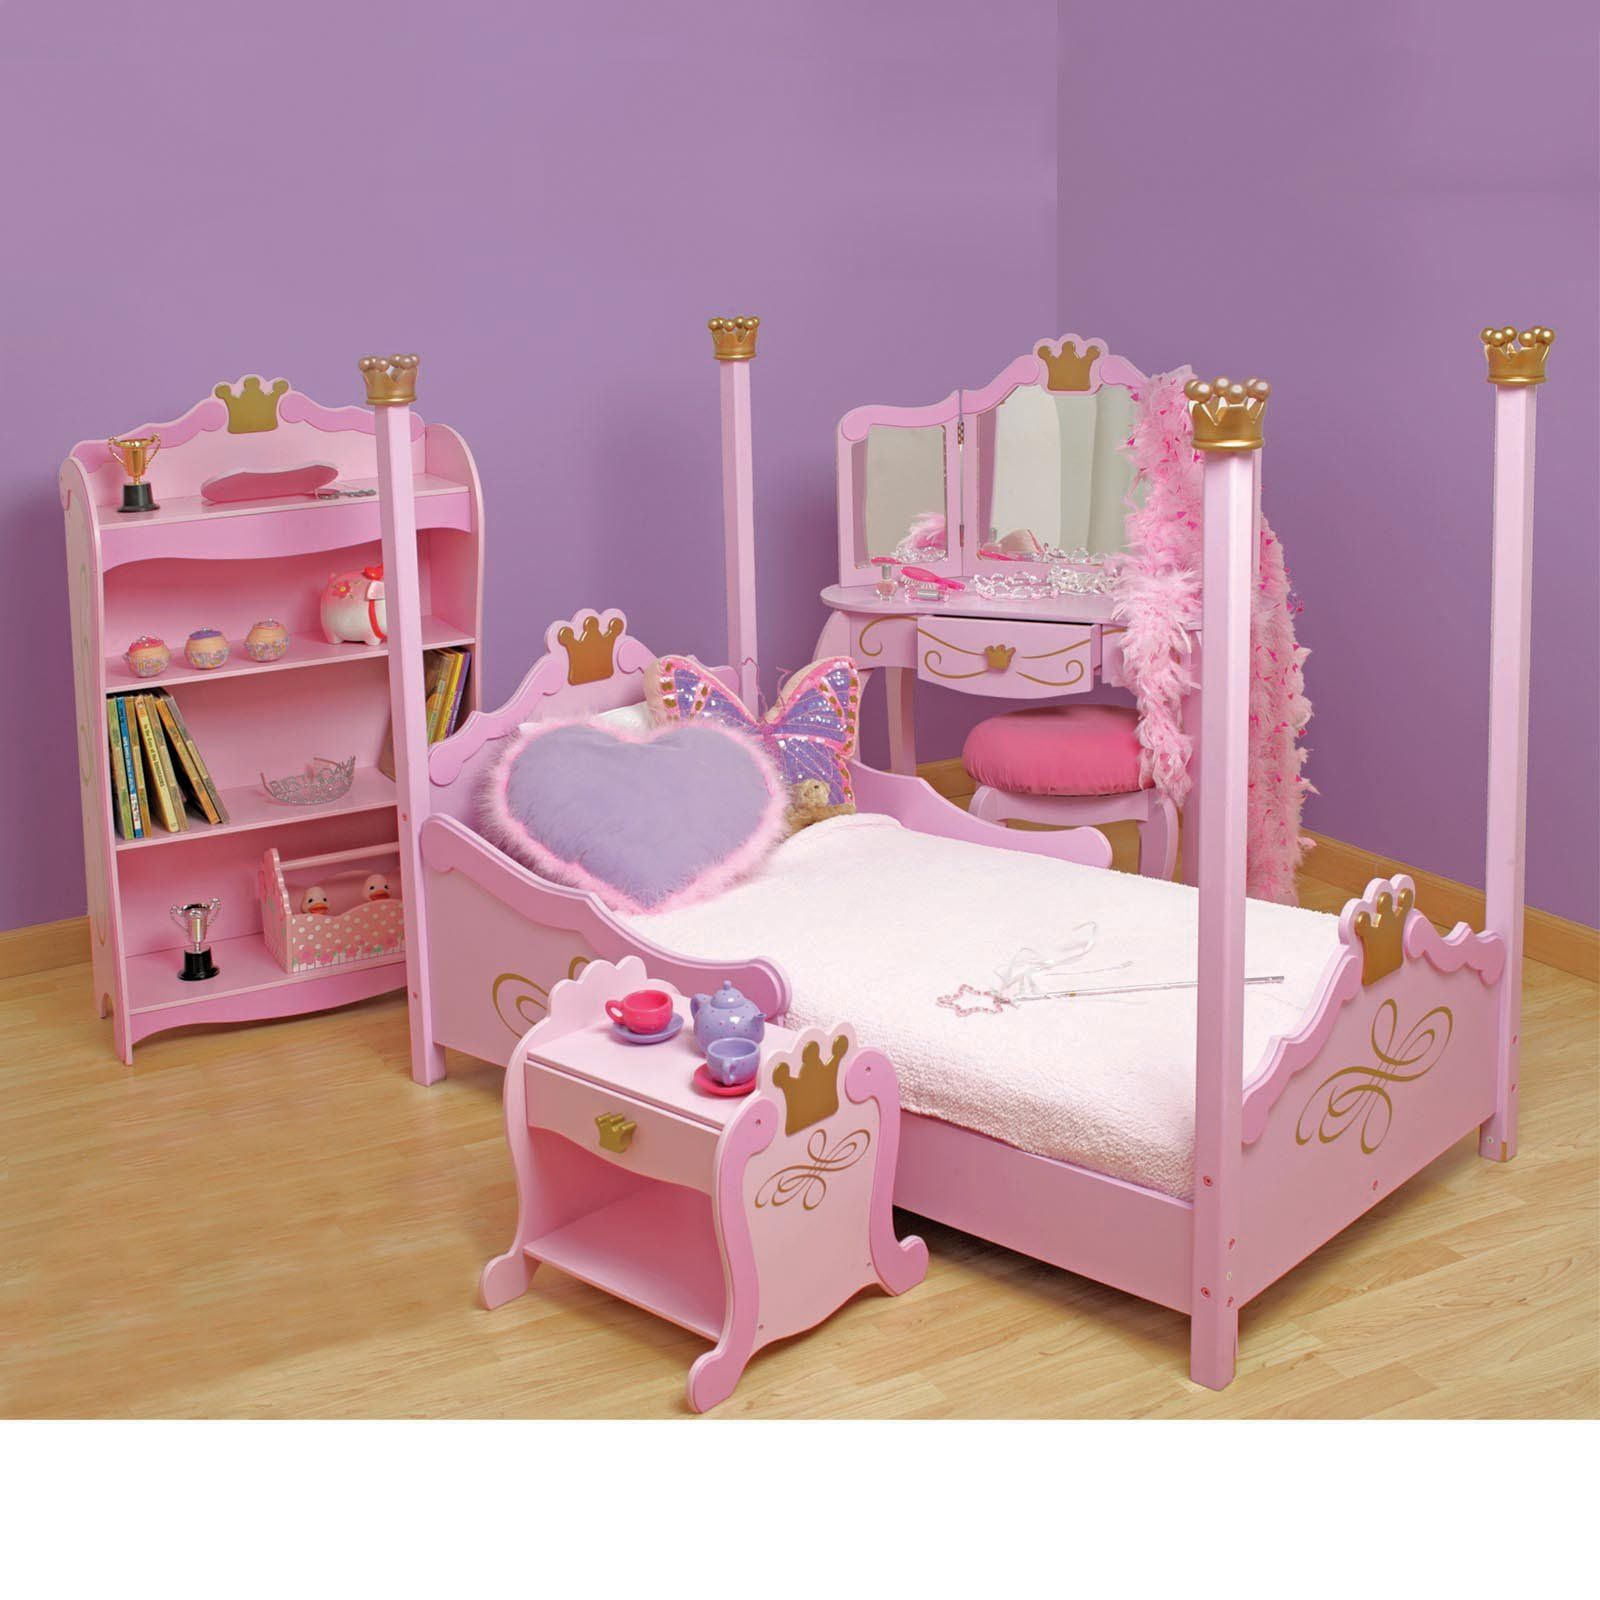 Girly Princess Bedroom Ideas: Cute Toddler Beds For Girls